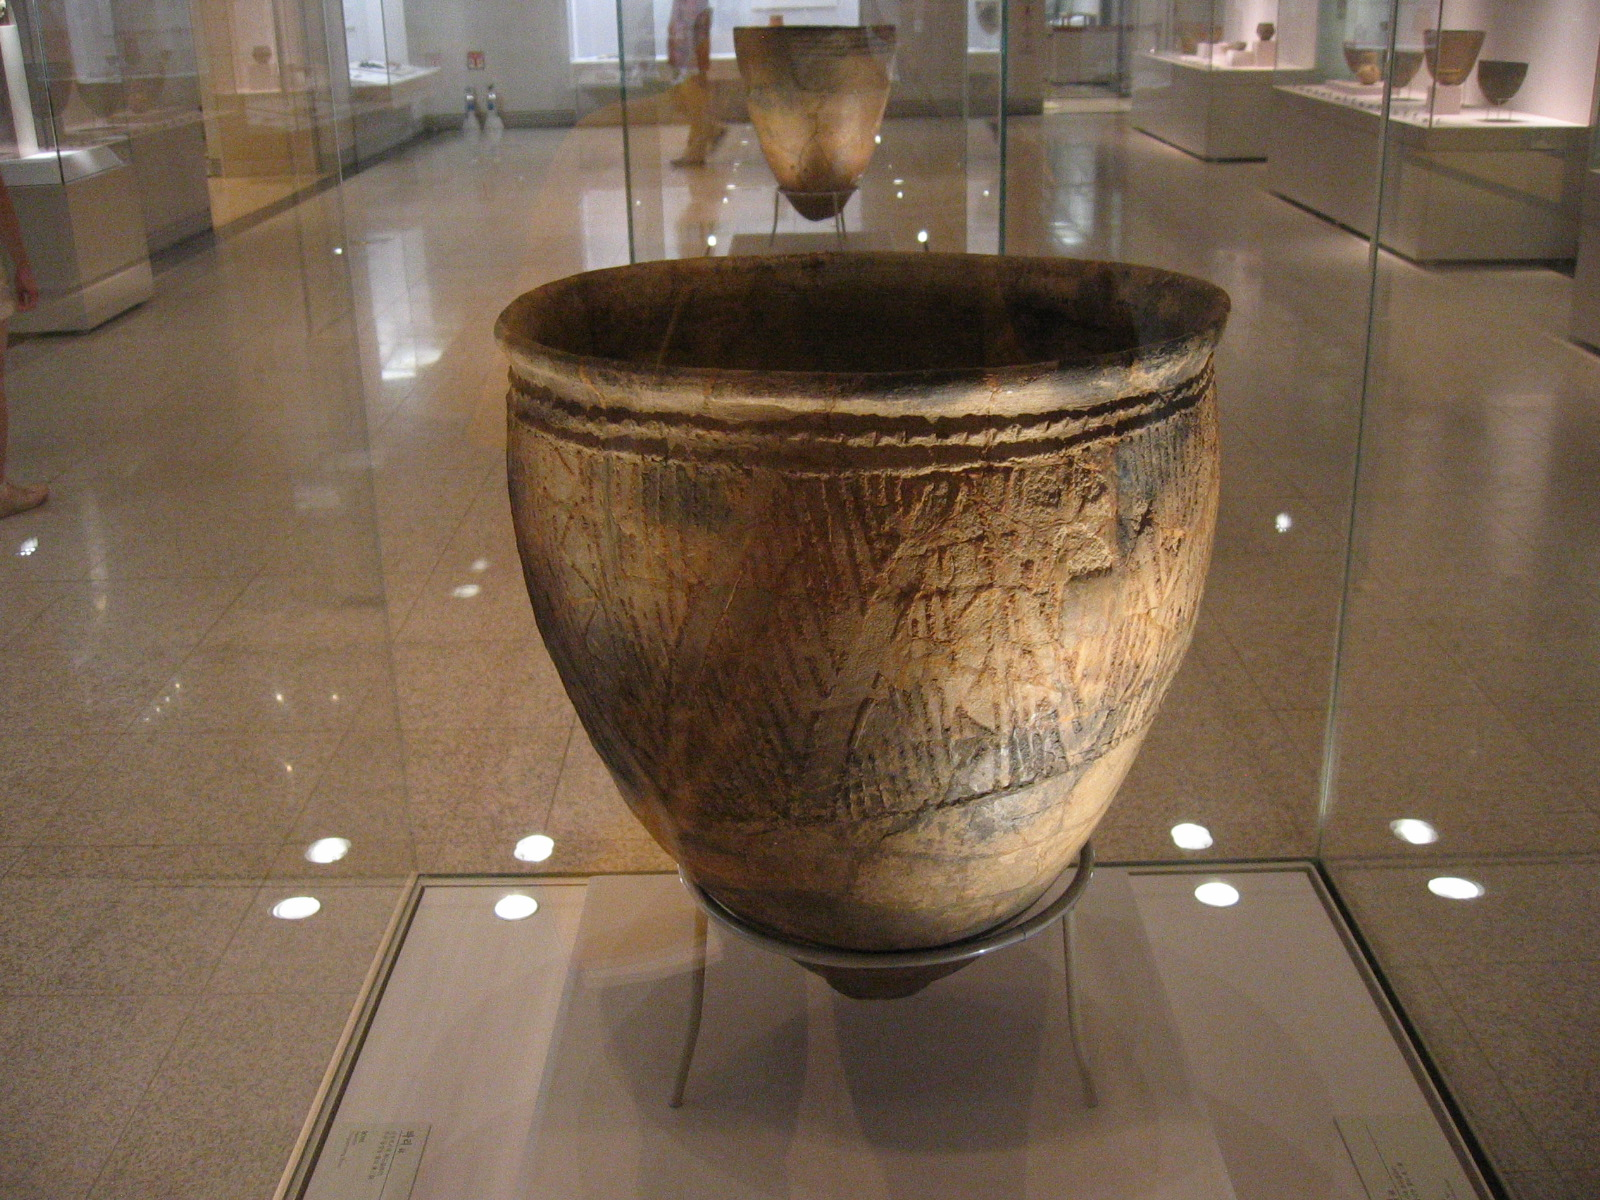 a history of earthenware in korea North korea soon became a communist state under the influence of the soviet union south korea declared themselves a republic in 1948 and became allies of the united states.